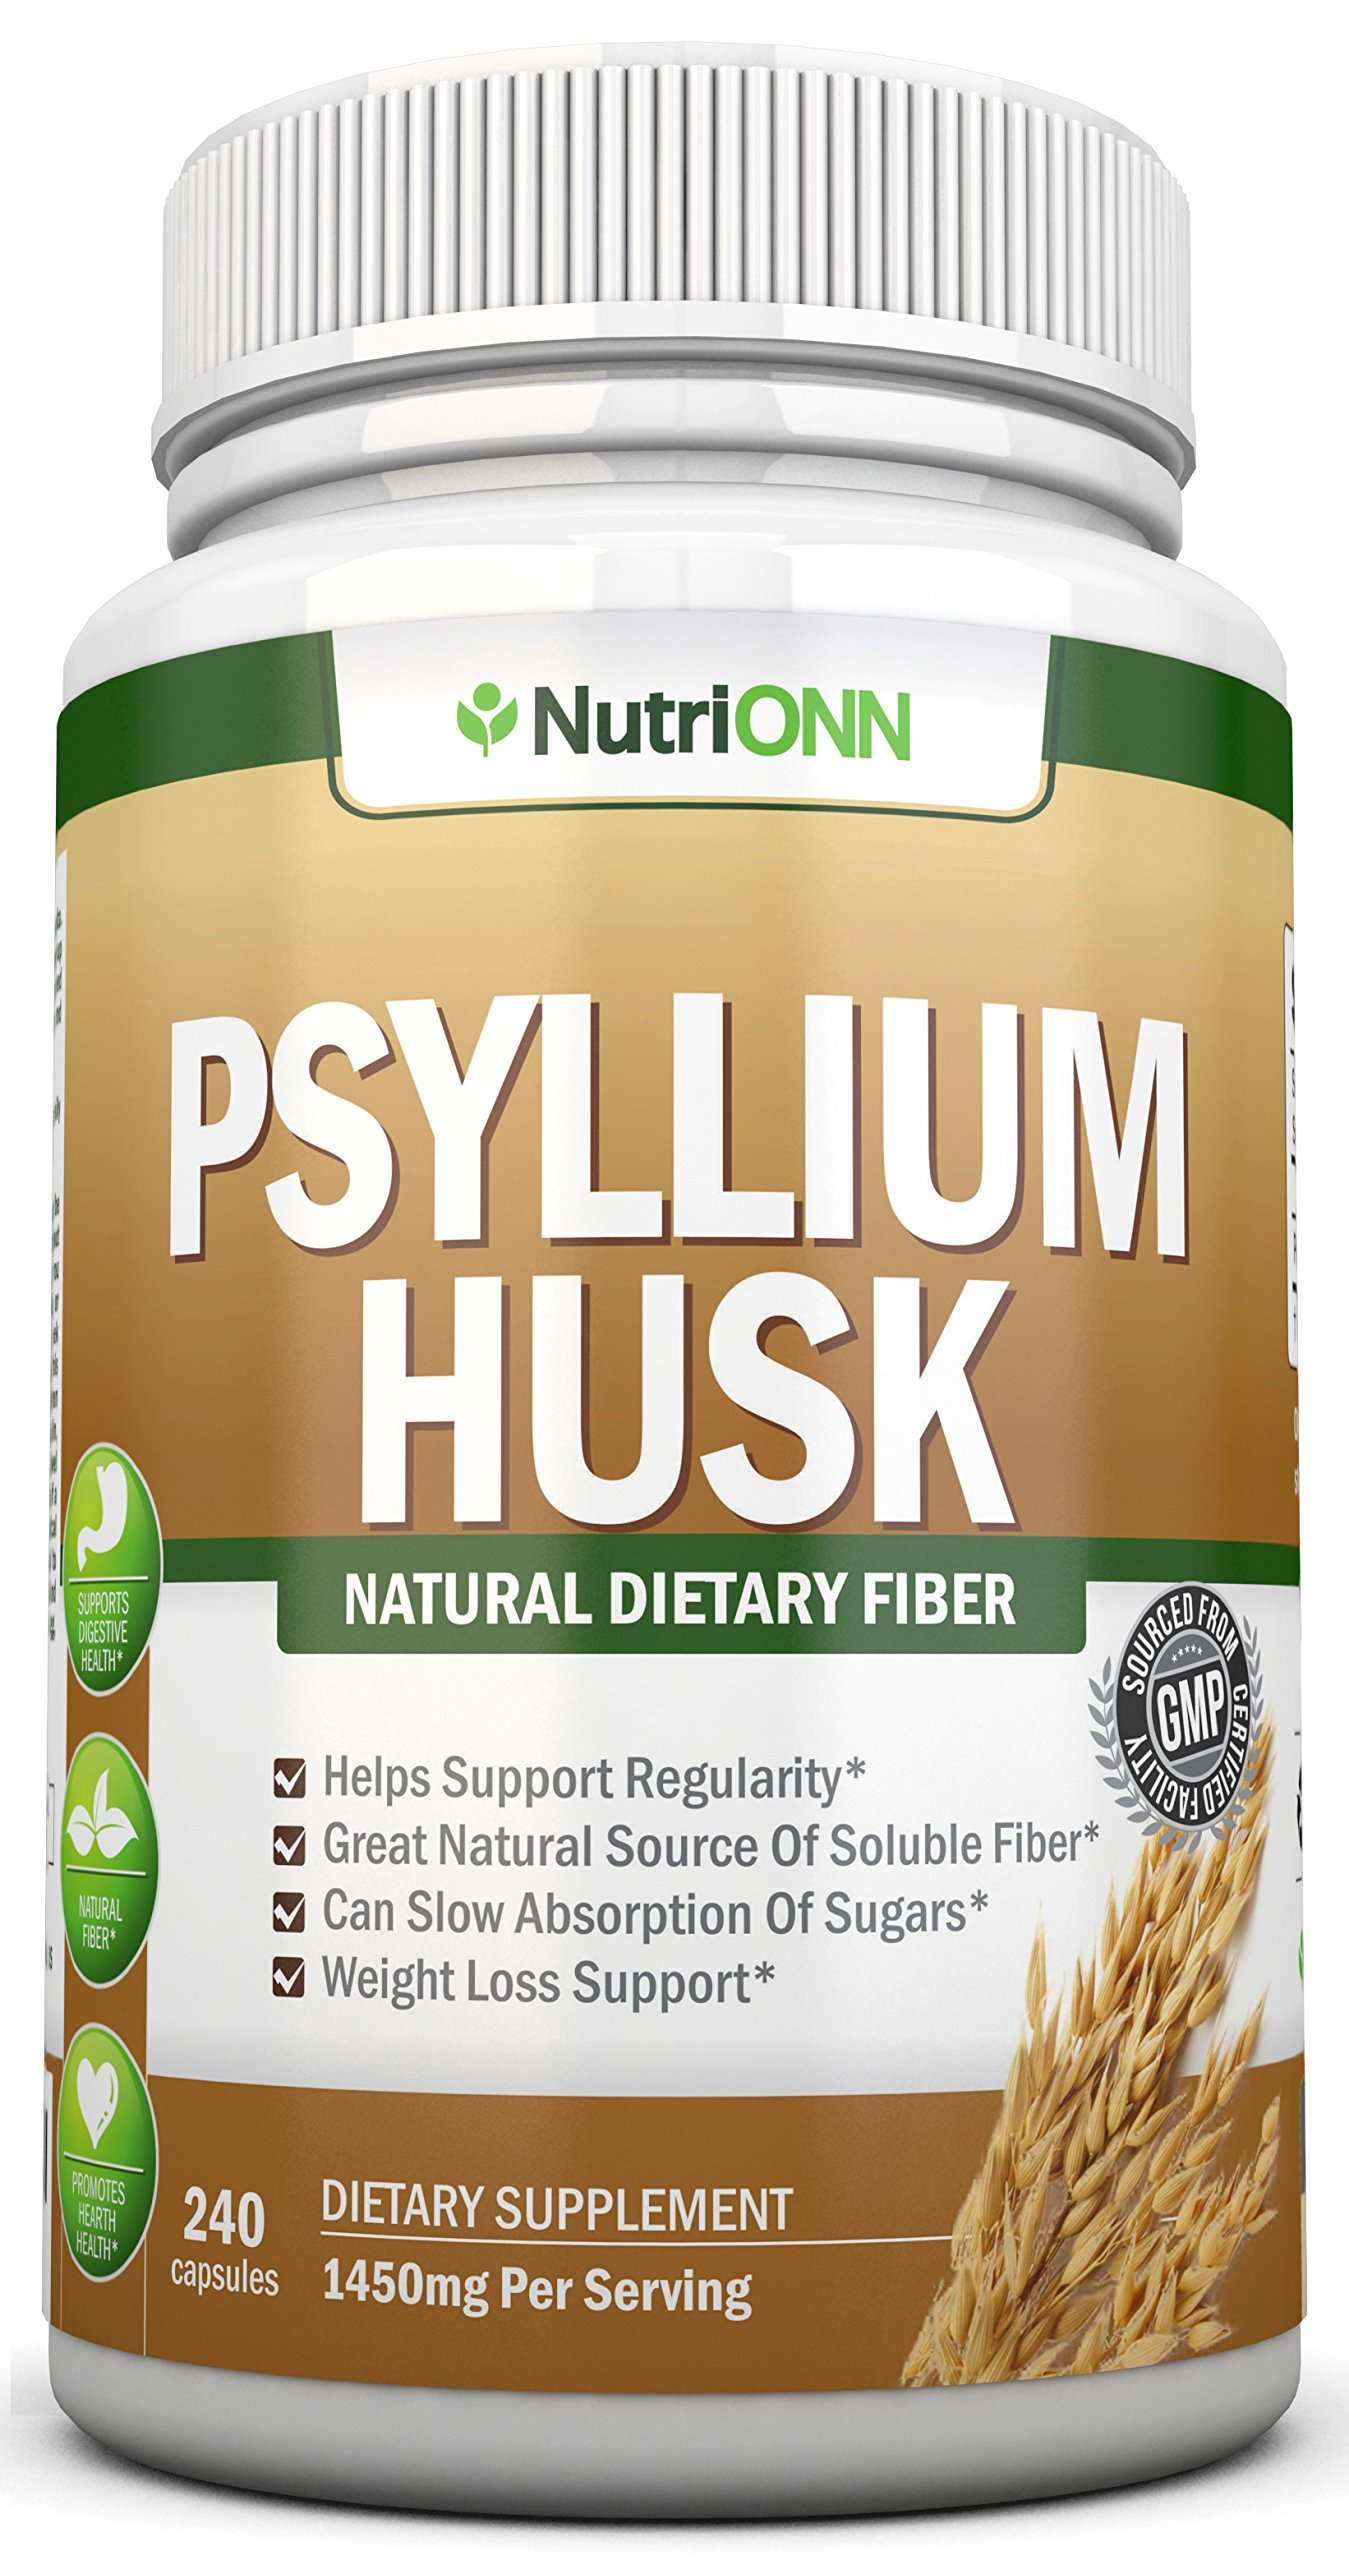 PSYLLIUM Husk Capsules - 1450mg Per Serving - 240 Capsules - Premium Psyllium Fiber Supplement - Great for Constipation, Digestion and Weight Loss - 100% Natural Soluble Fiber by NutriONN